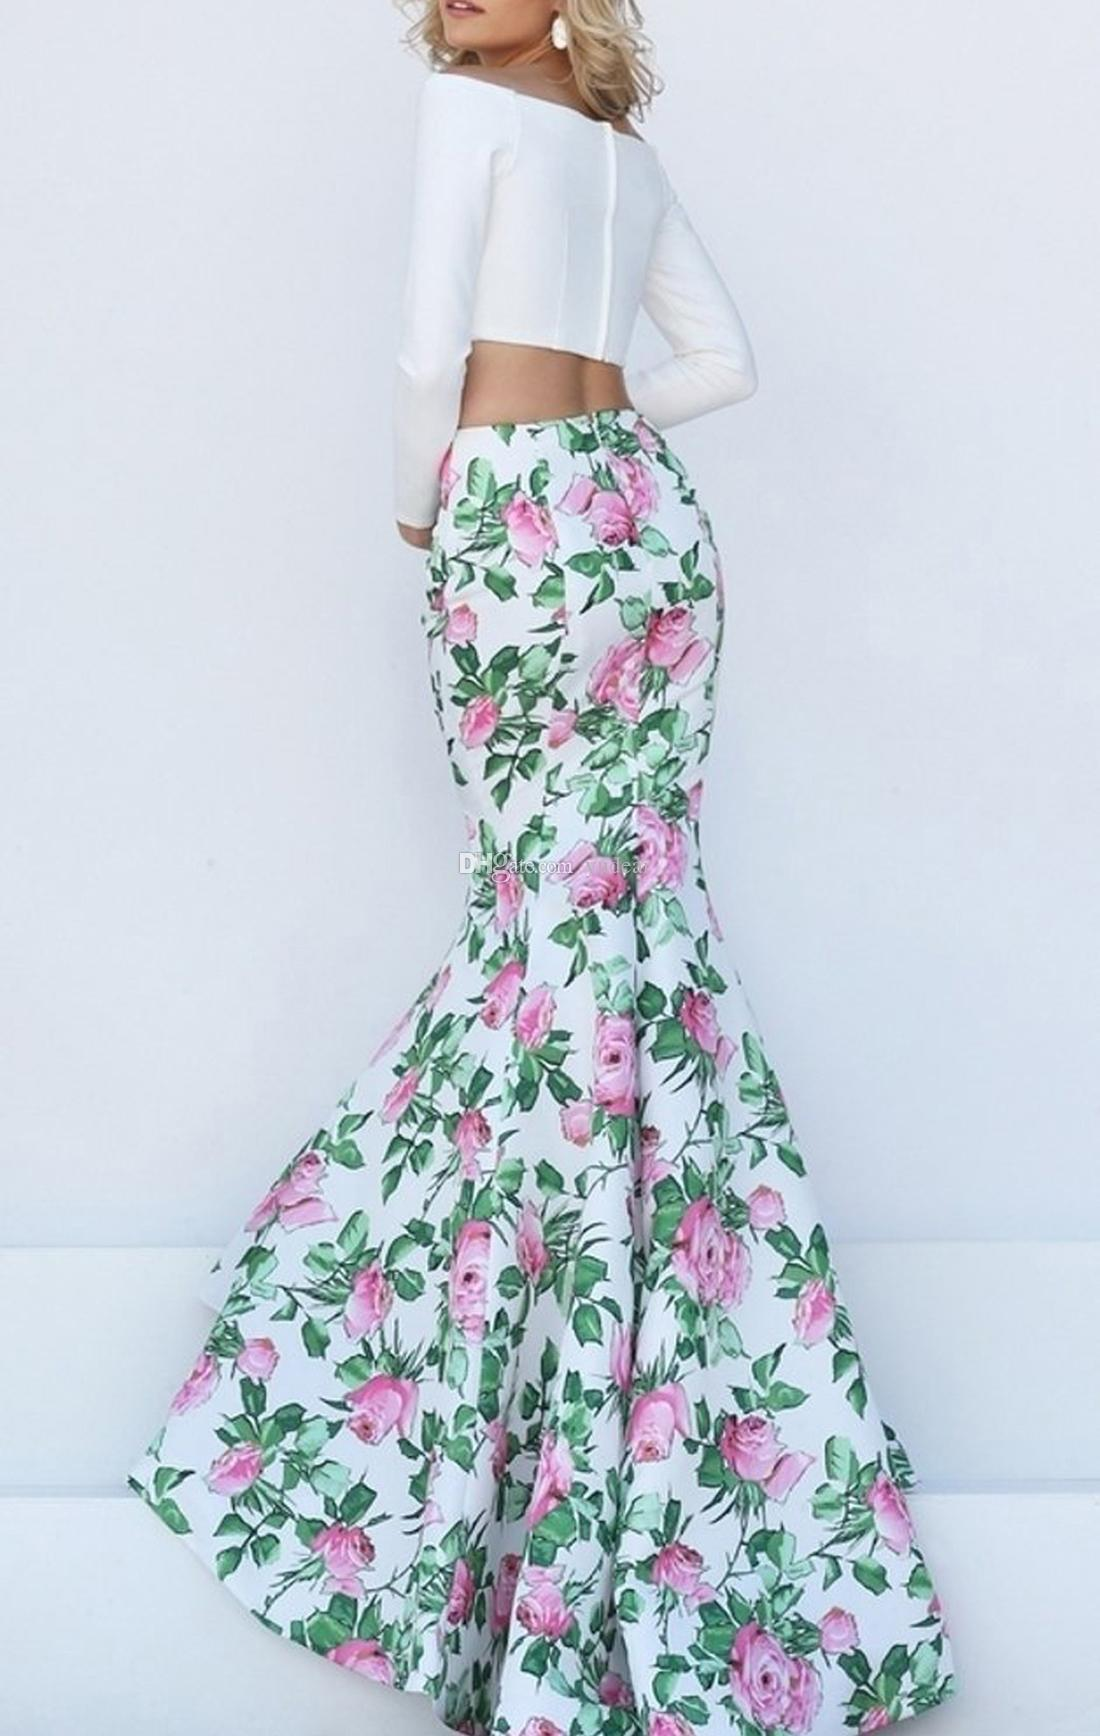 2019 Mermaid Elegant Bateau Neck Women Prom Dresses Two Pieces Long Sleeves White Satin Flower Print Skirts Zipper Plus Evening Party Gowns